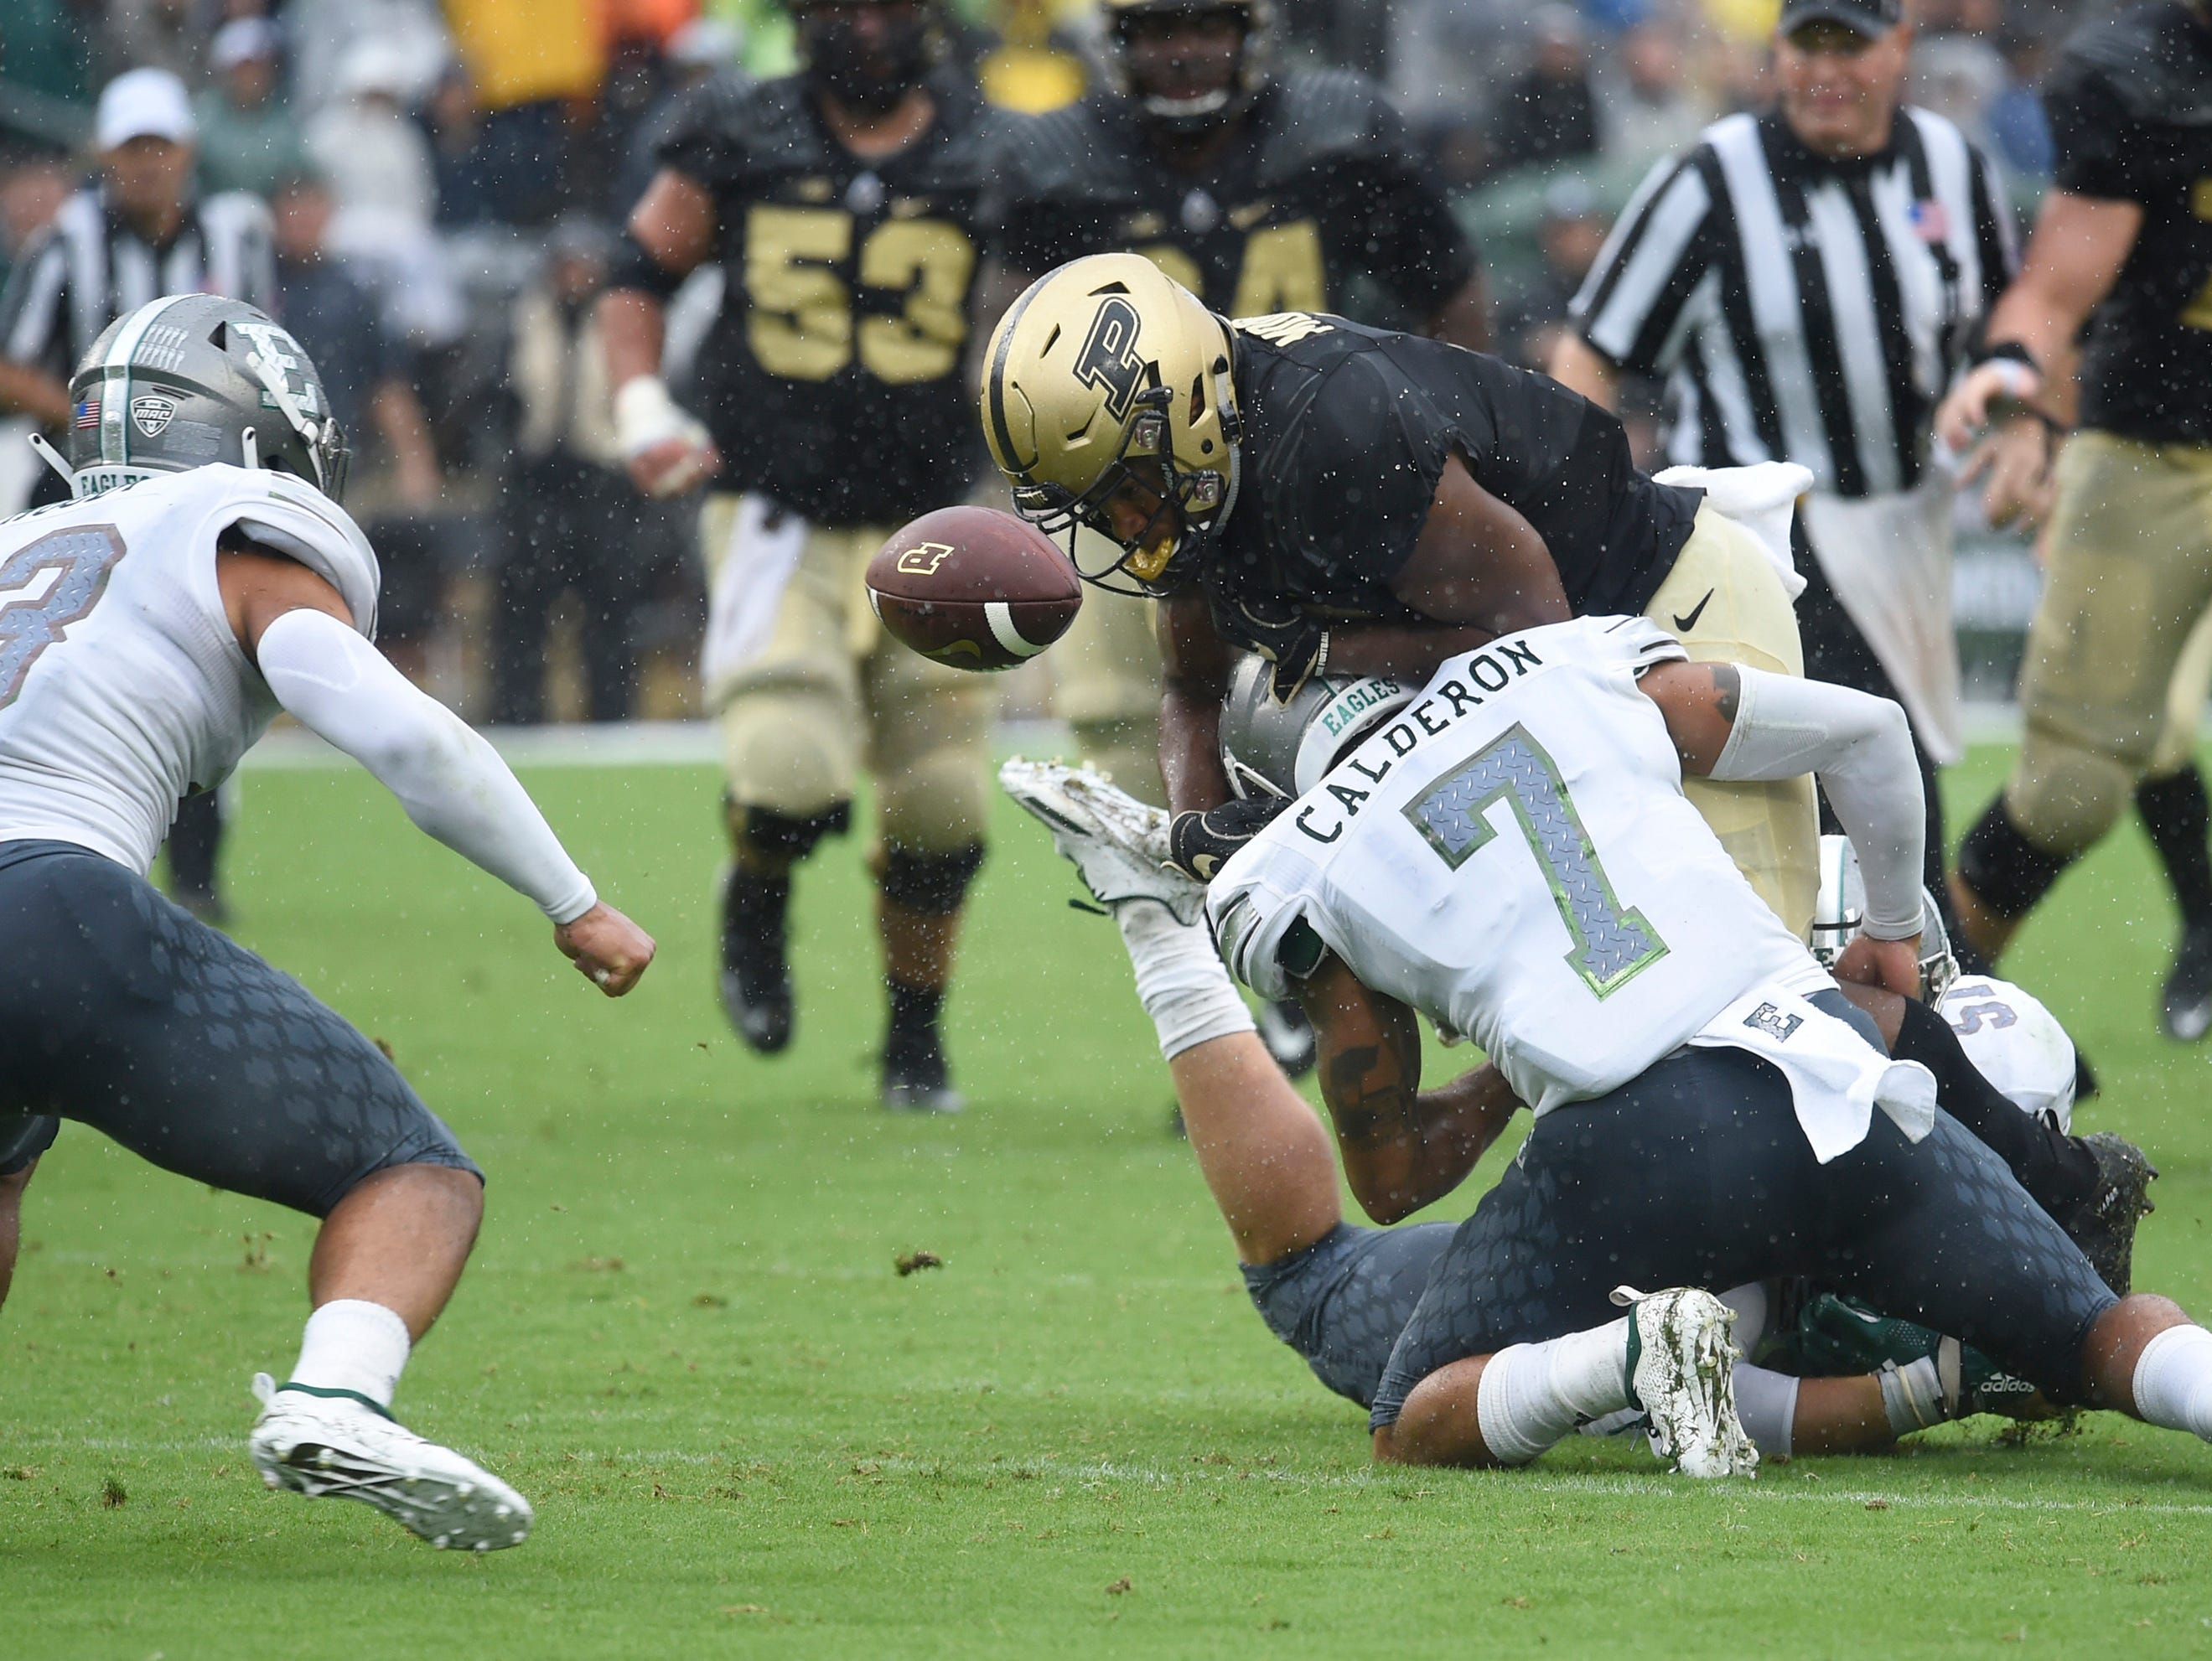 Purdue Boilermakers running back D.J. Knox (1) fumbles the ball in the first half against Eastern Michigan Eagles defensive back Ikie Calderon (7) at Ross-Ade Stadium.